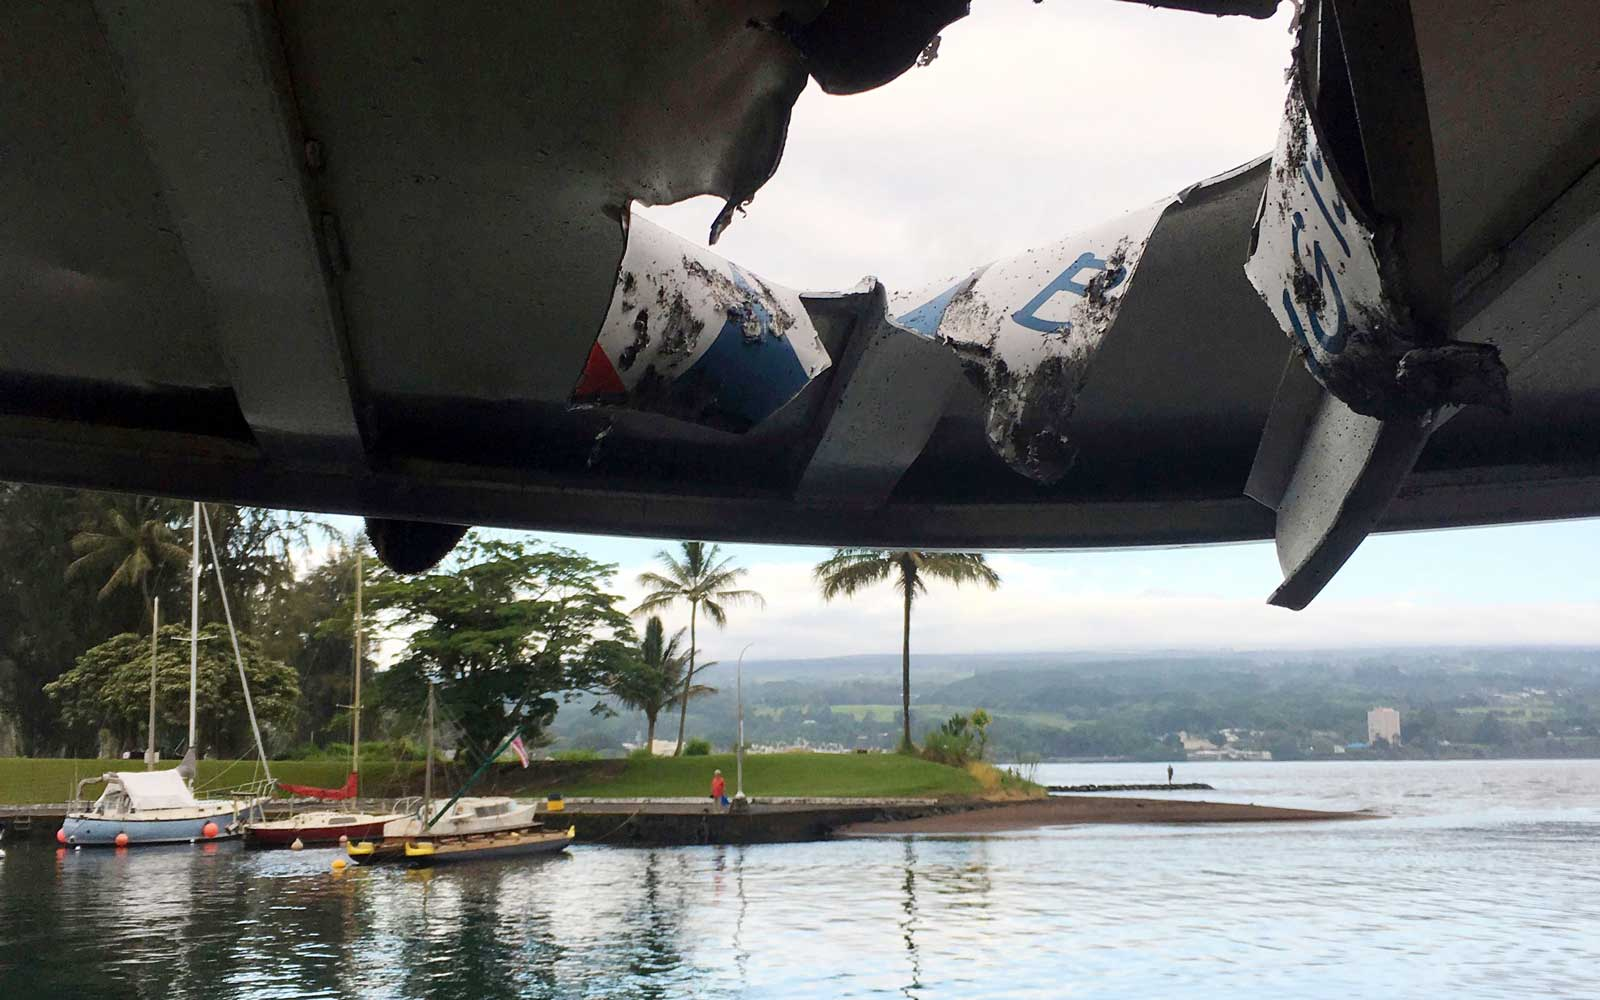 At least 23 injured after lava bomb hits boat tour in Hawaii, Hilo, USA - 16 Jul 2018